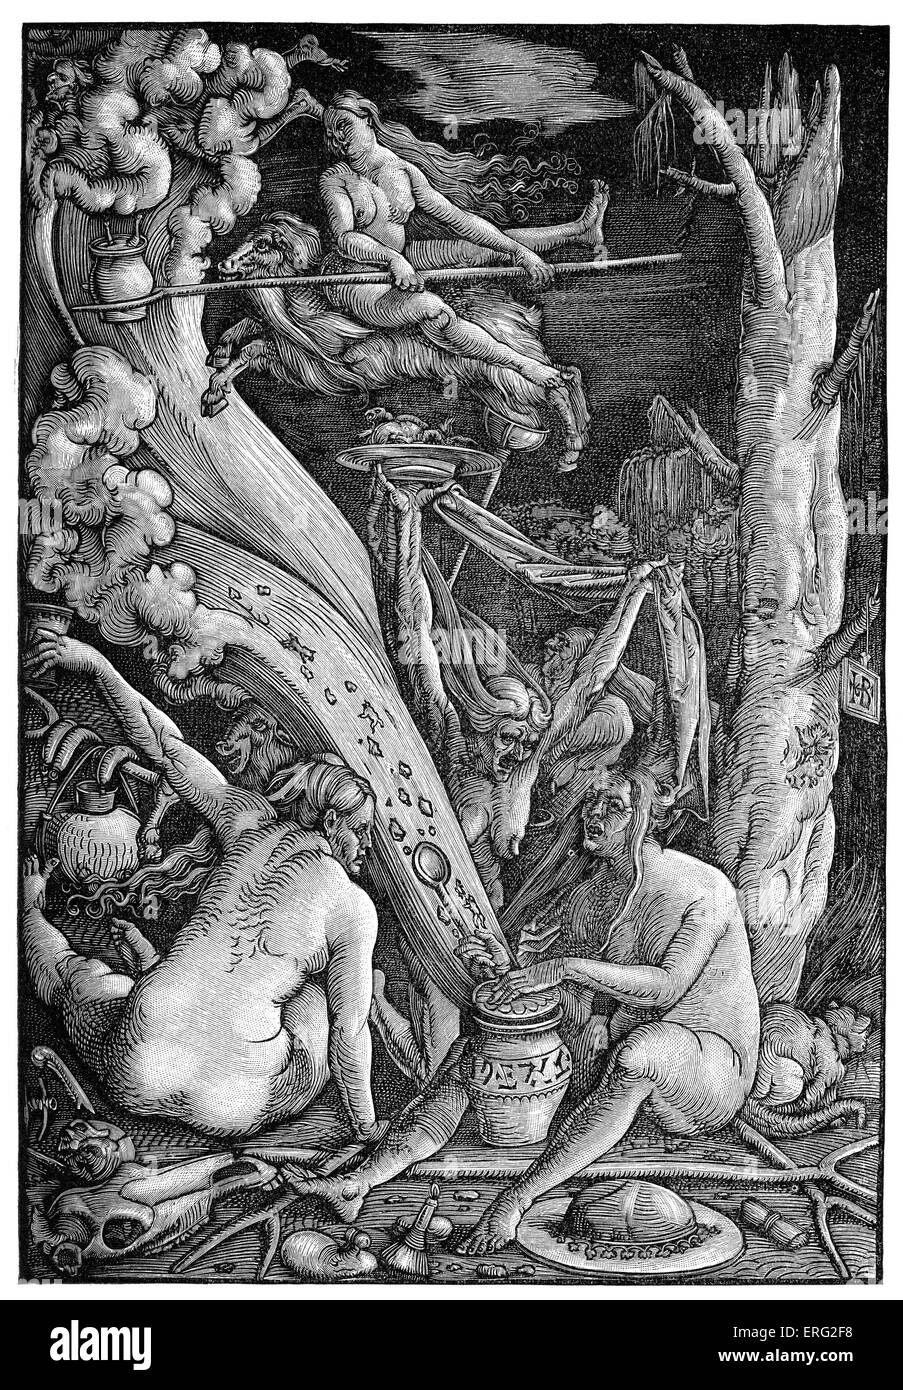 A witches coven working magic, brewing potions.  German sixteenth century woodcut by Hans Baldung Grien - German - Stock Image